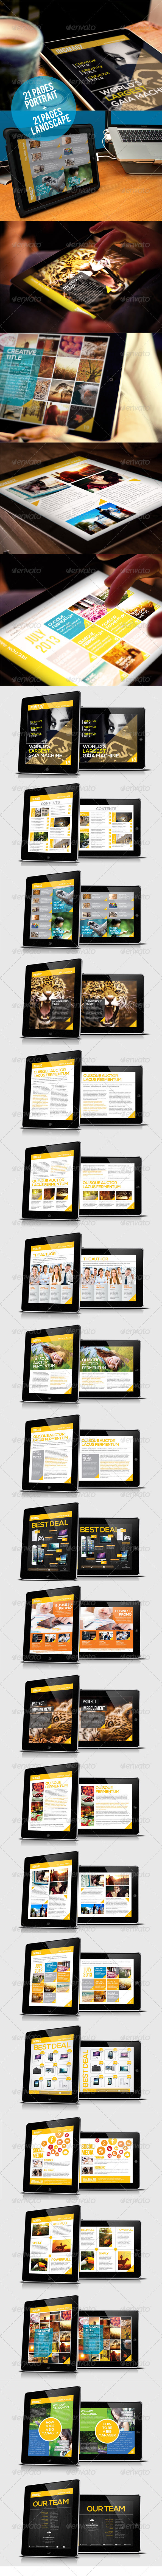 GraphicRiver Ingmagz Tablet Magazine Template 4701250